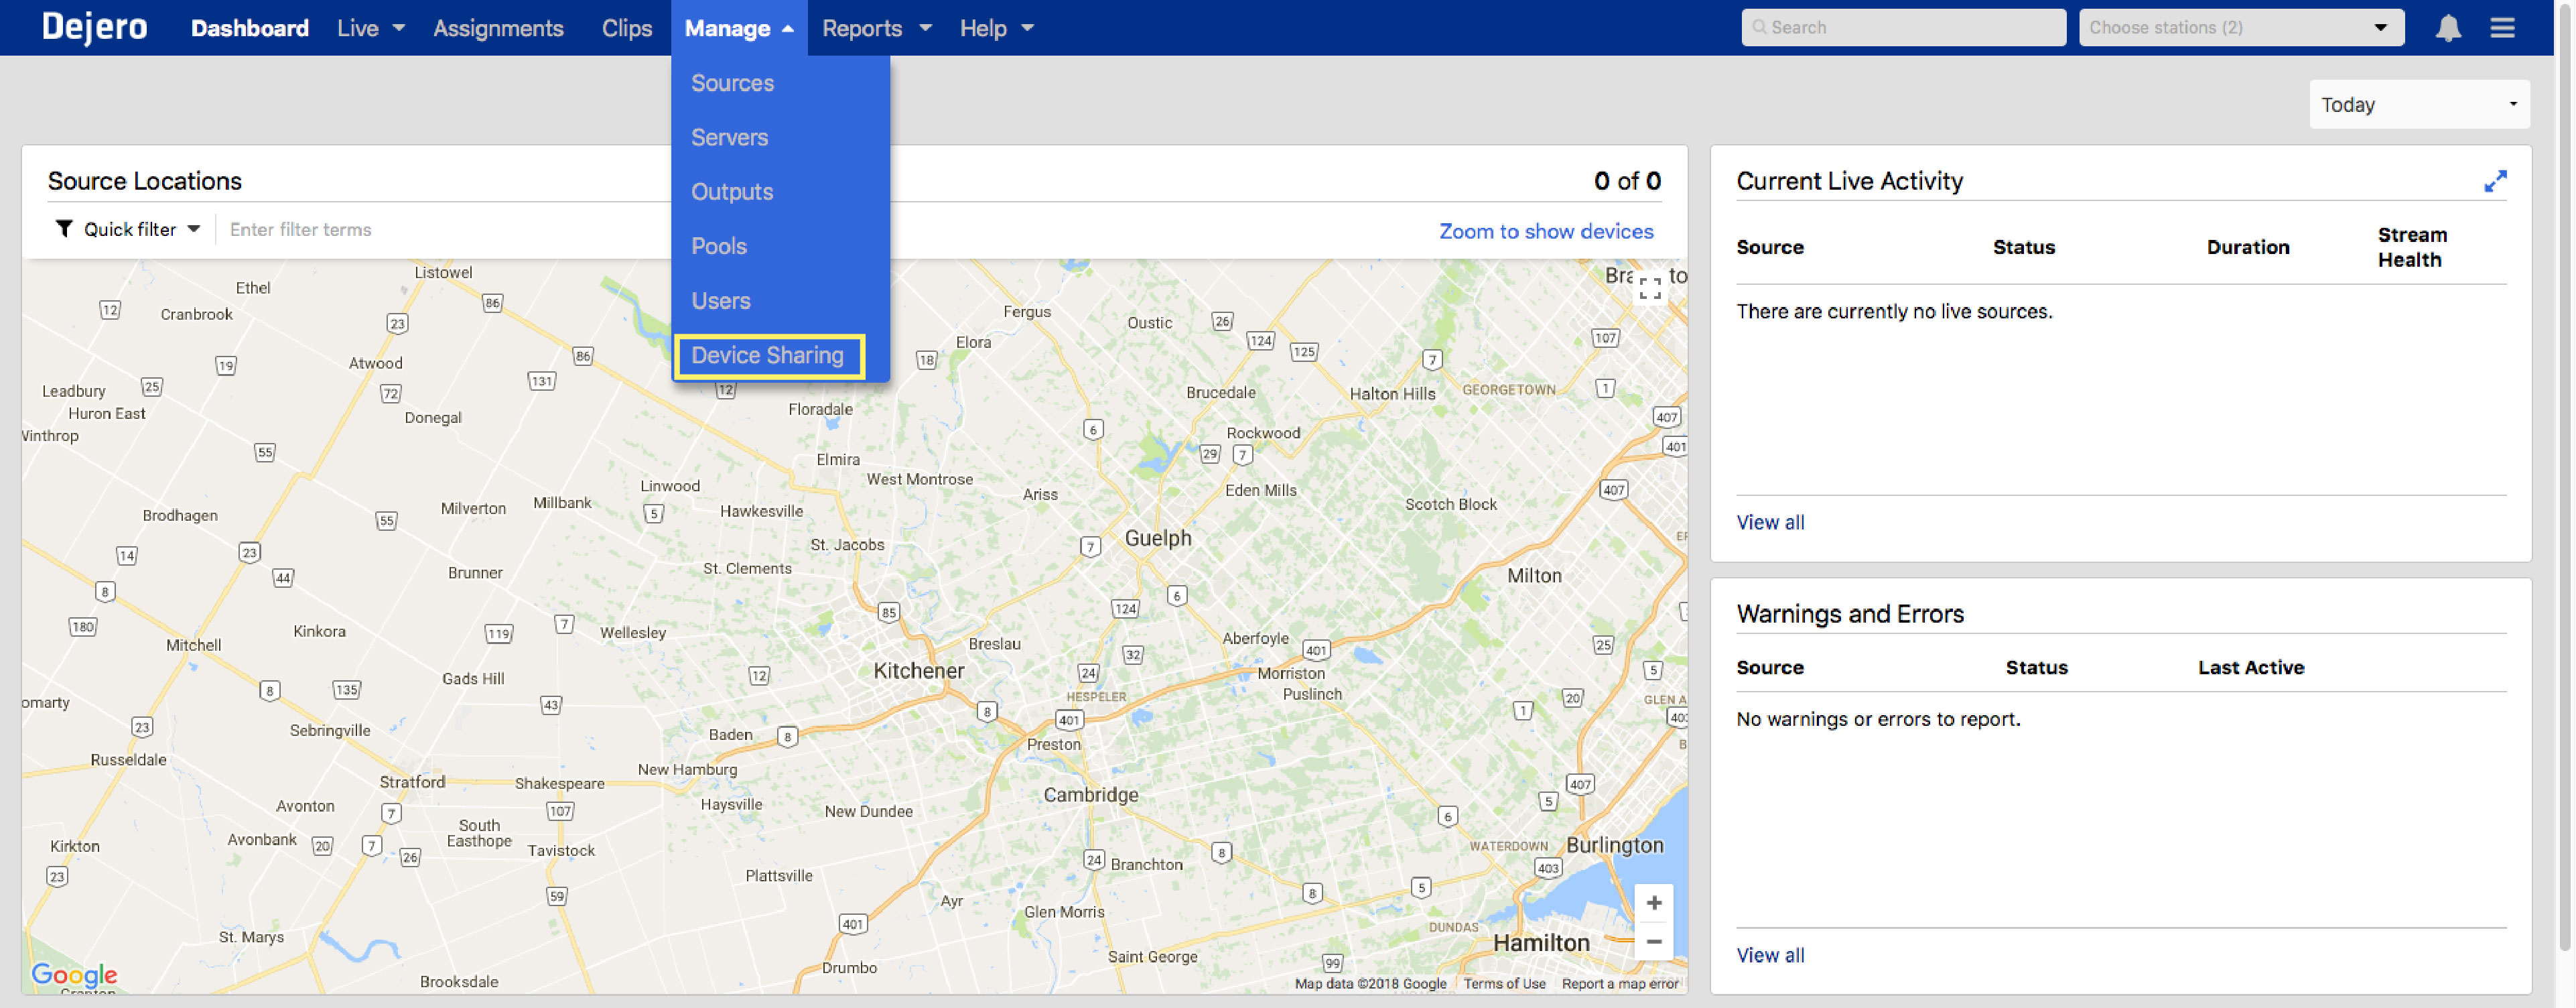 Where to find Device Sharing